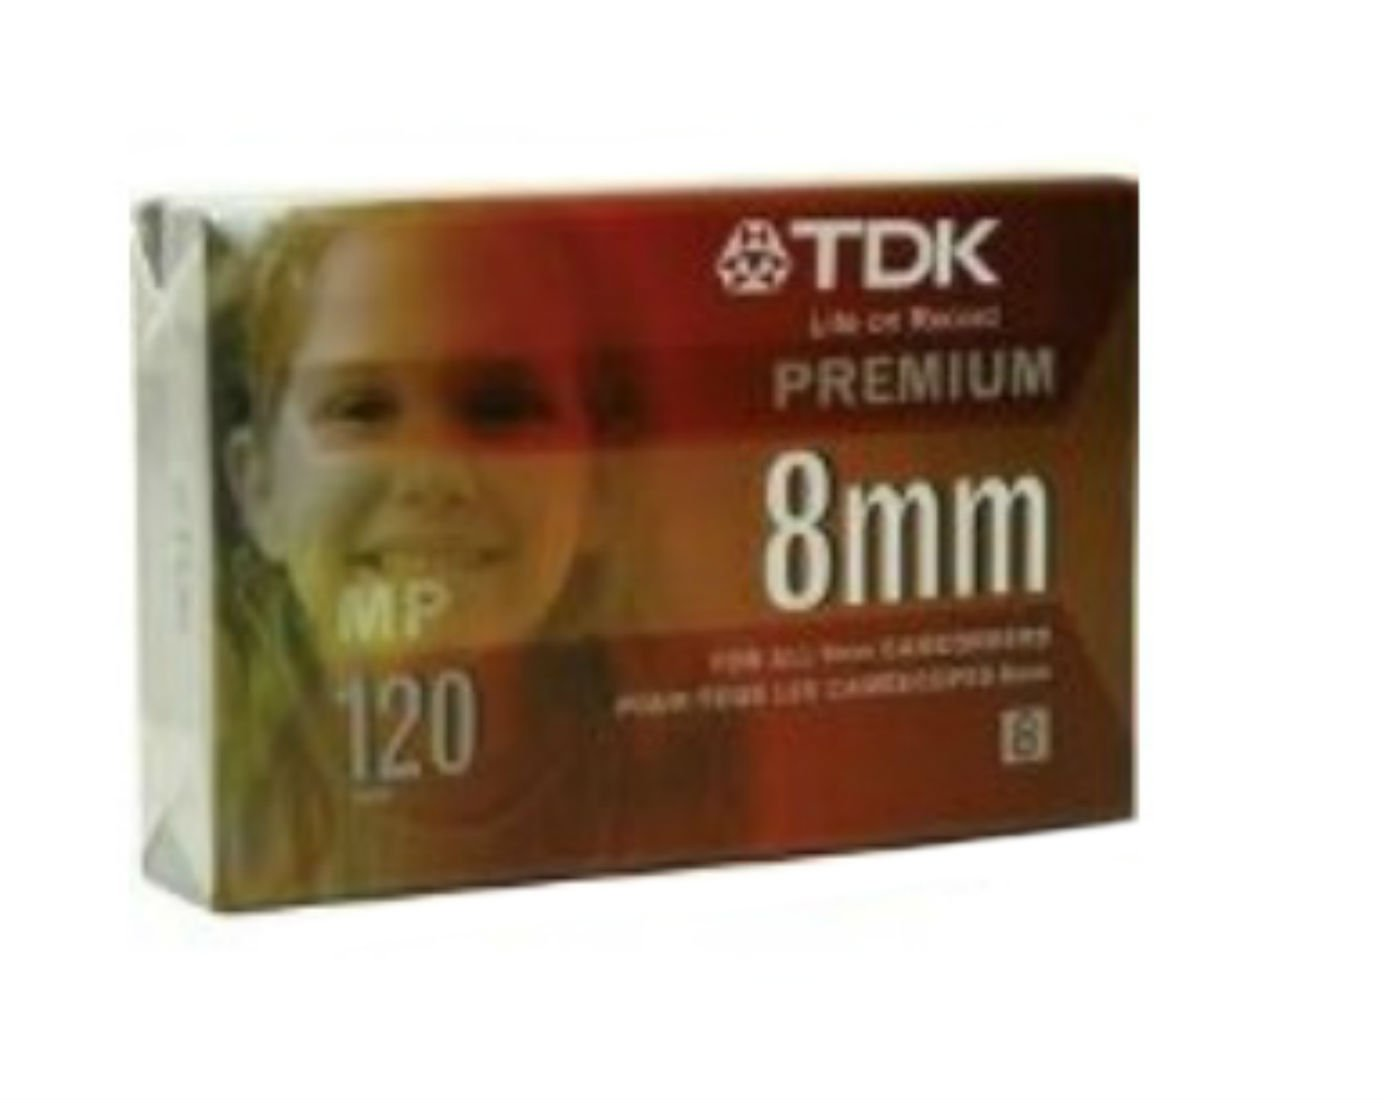 TDK P-120HS Premium 8mm Cassette Imation - Tdk P6-120MPL Blank Media & Cleaning Cartridges